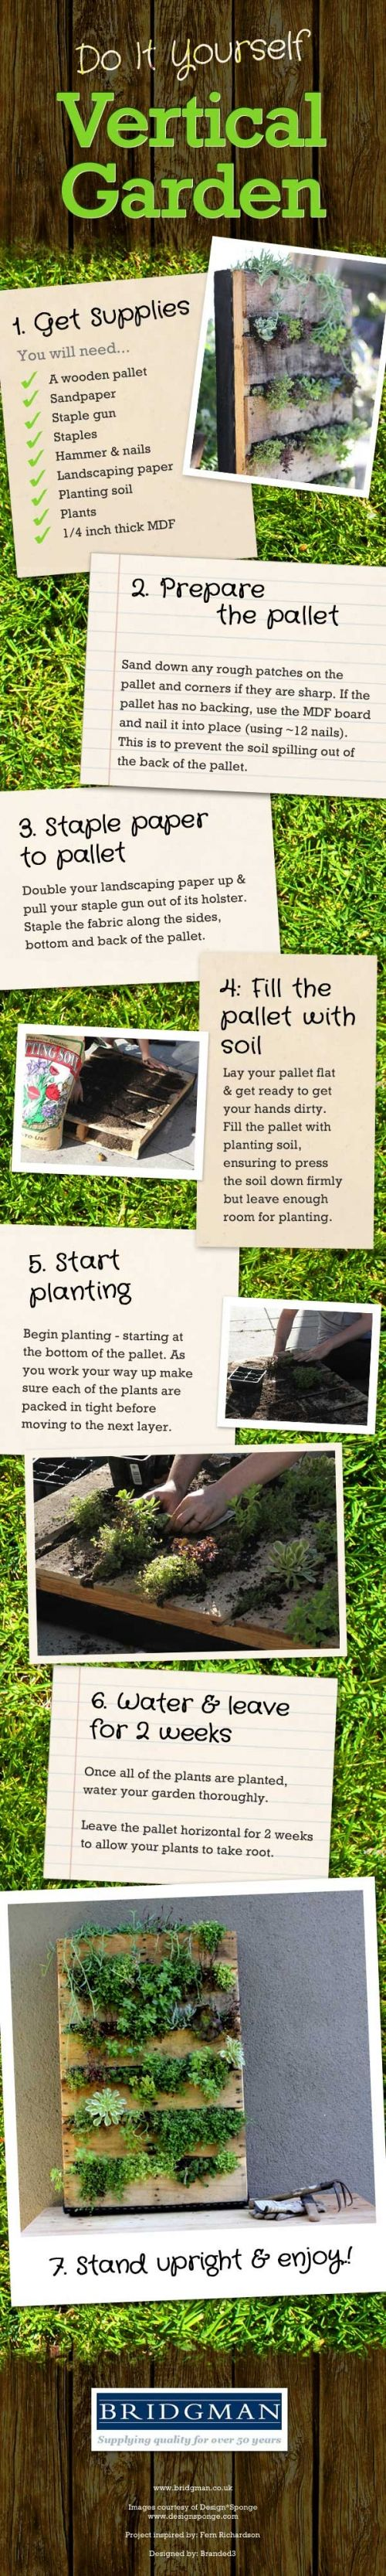 This would be a great idea for an herb garden!!! DIY Vertical